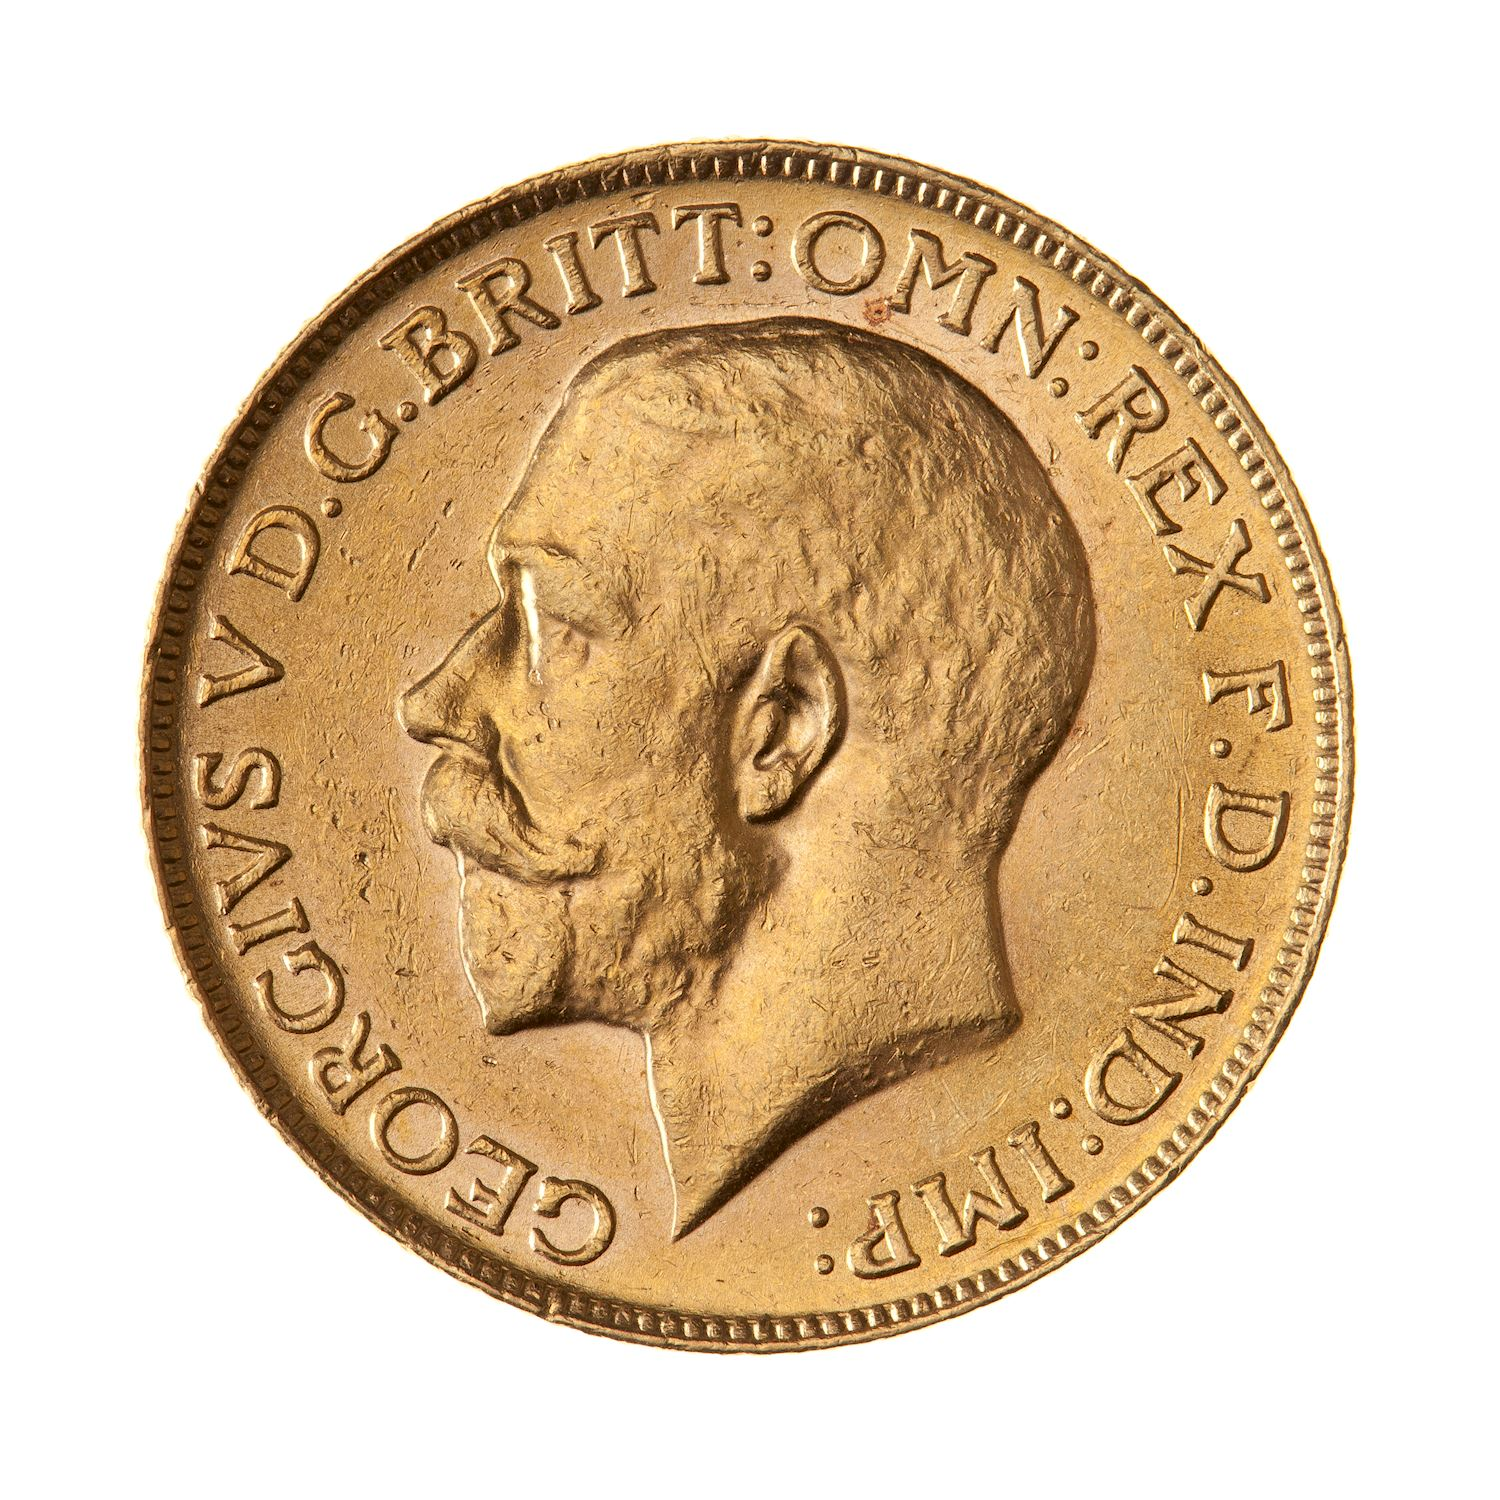 Sovereign (Pre-Decimal): Photo Coin - Sovereign, Canada, 1918